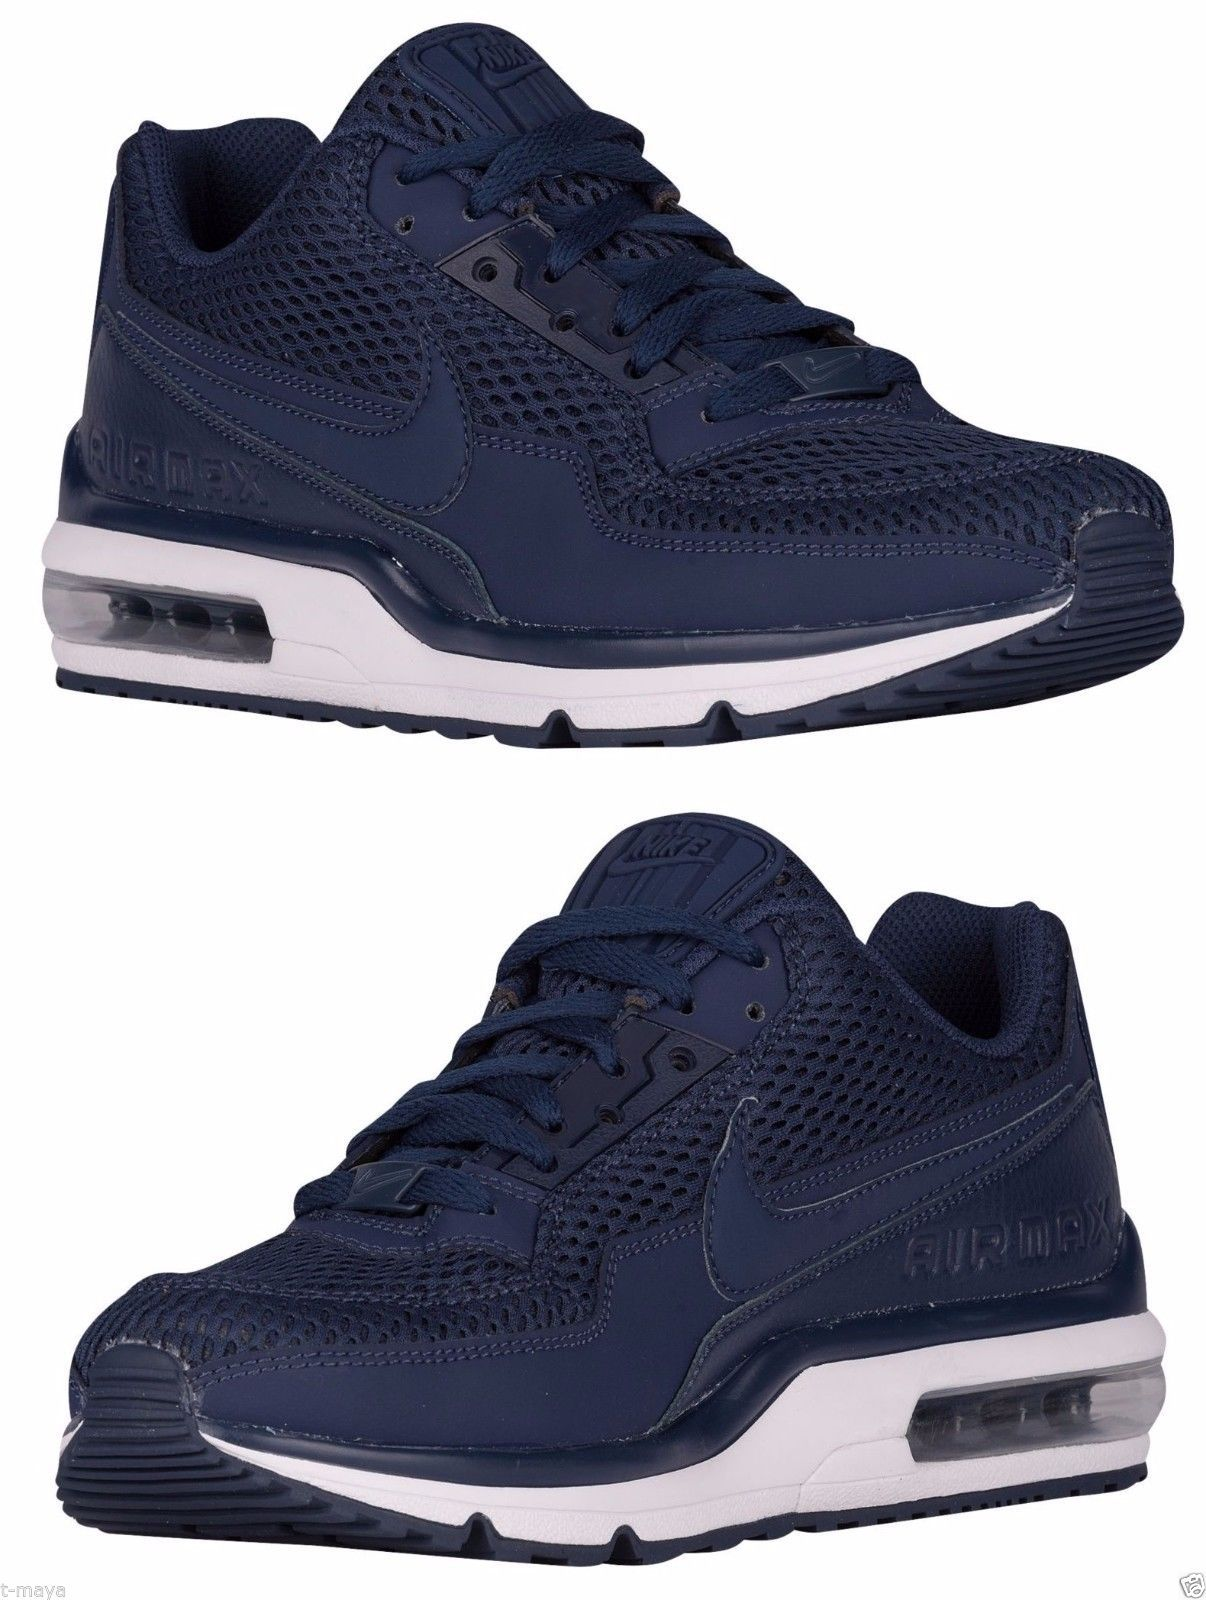 17e079404c54 NIKE AIR MAX LTD 3 MEN s MESH M RUNNING MIDNIGHT NAVY - WHITE AUTHENTIC NEW  SIZE